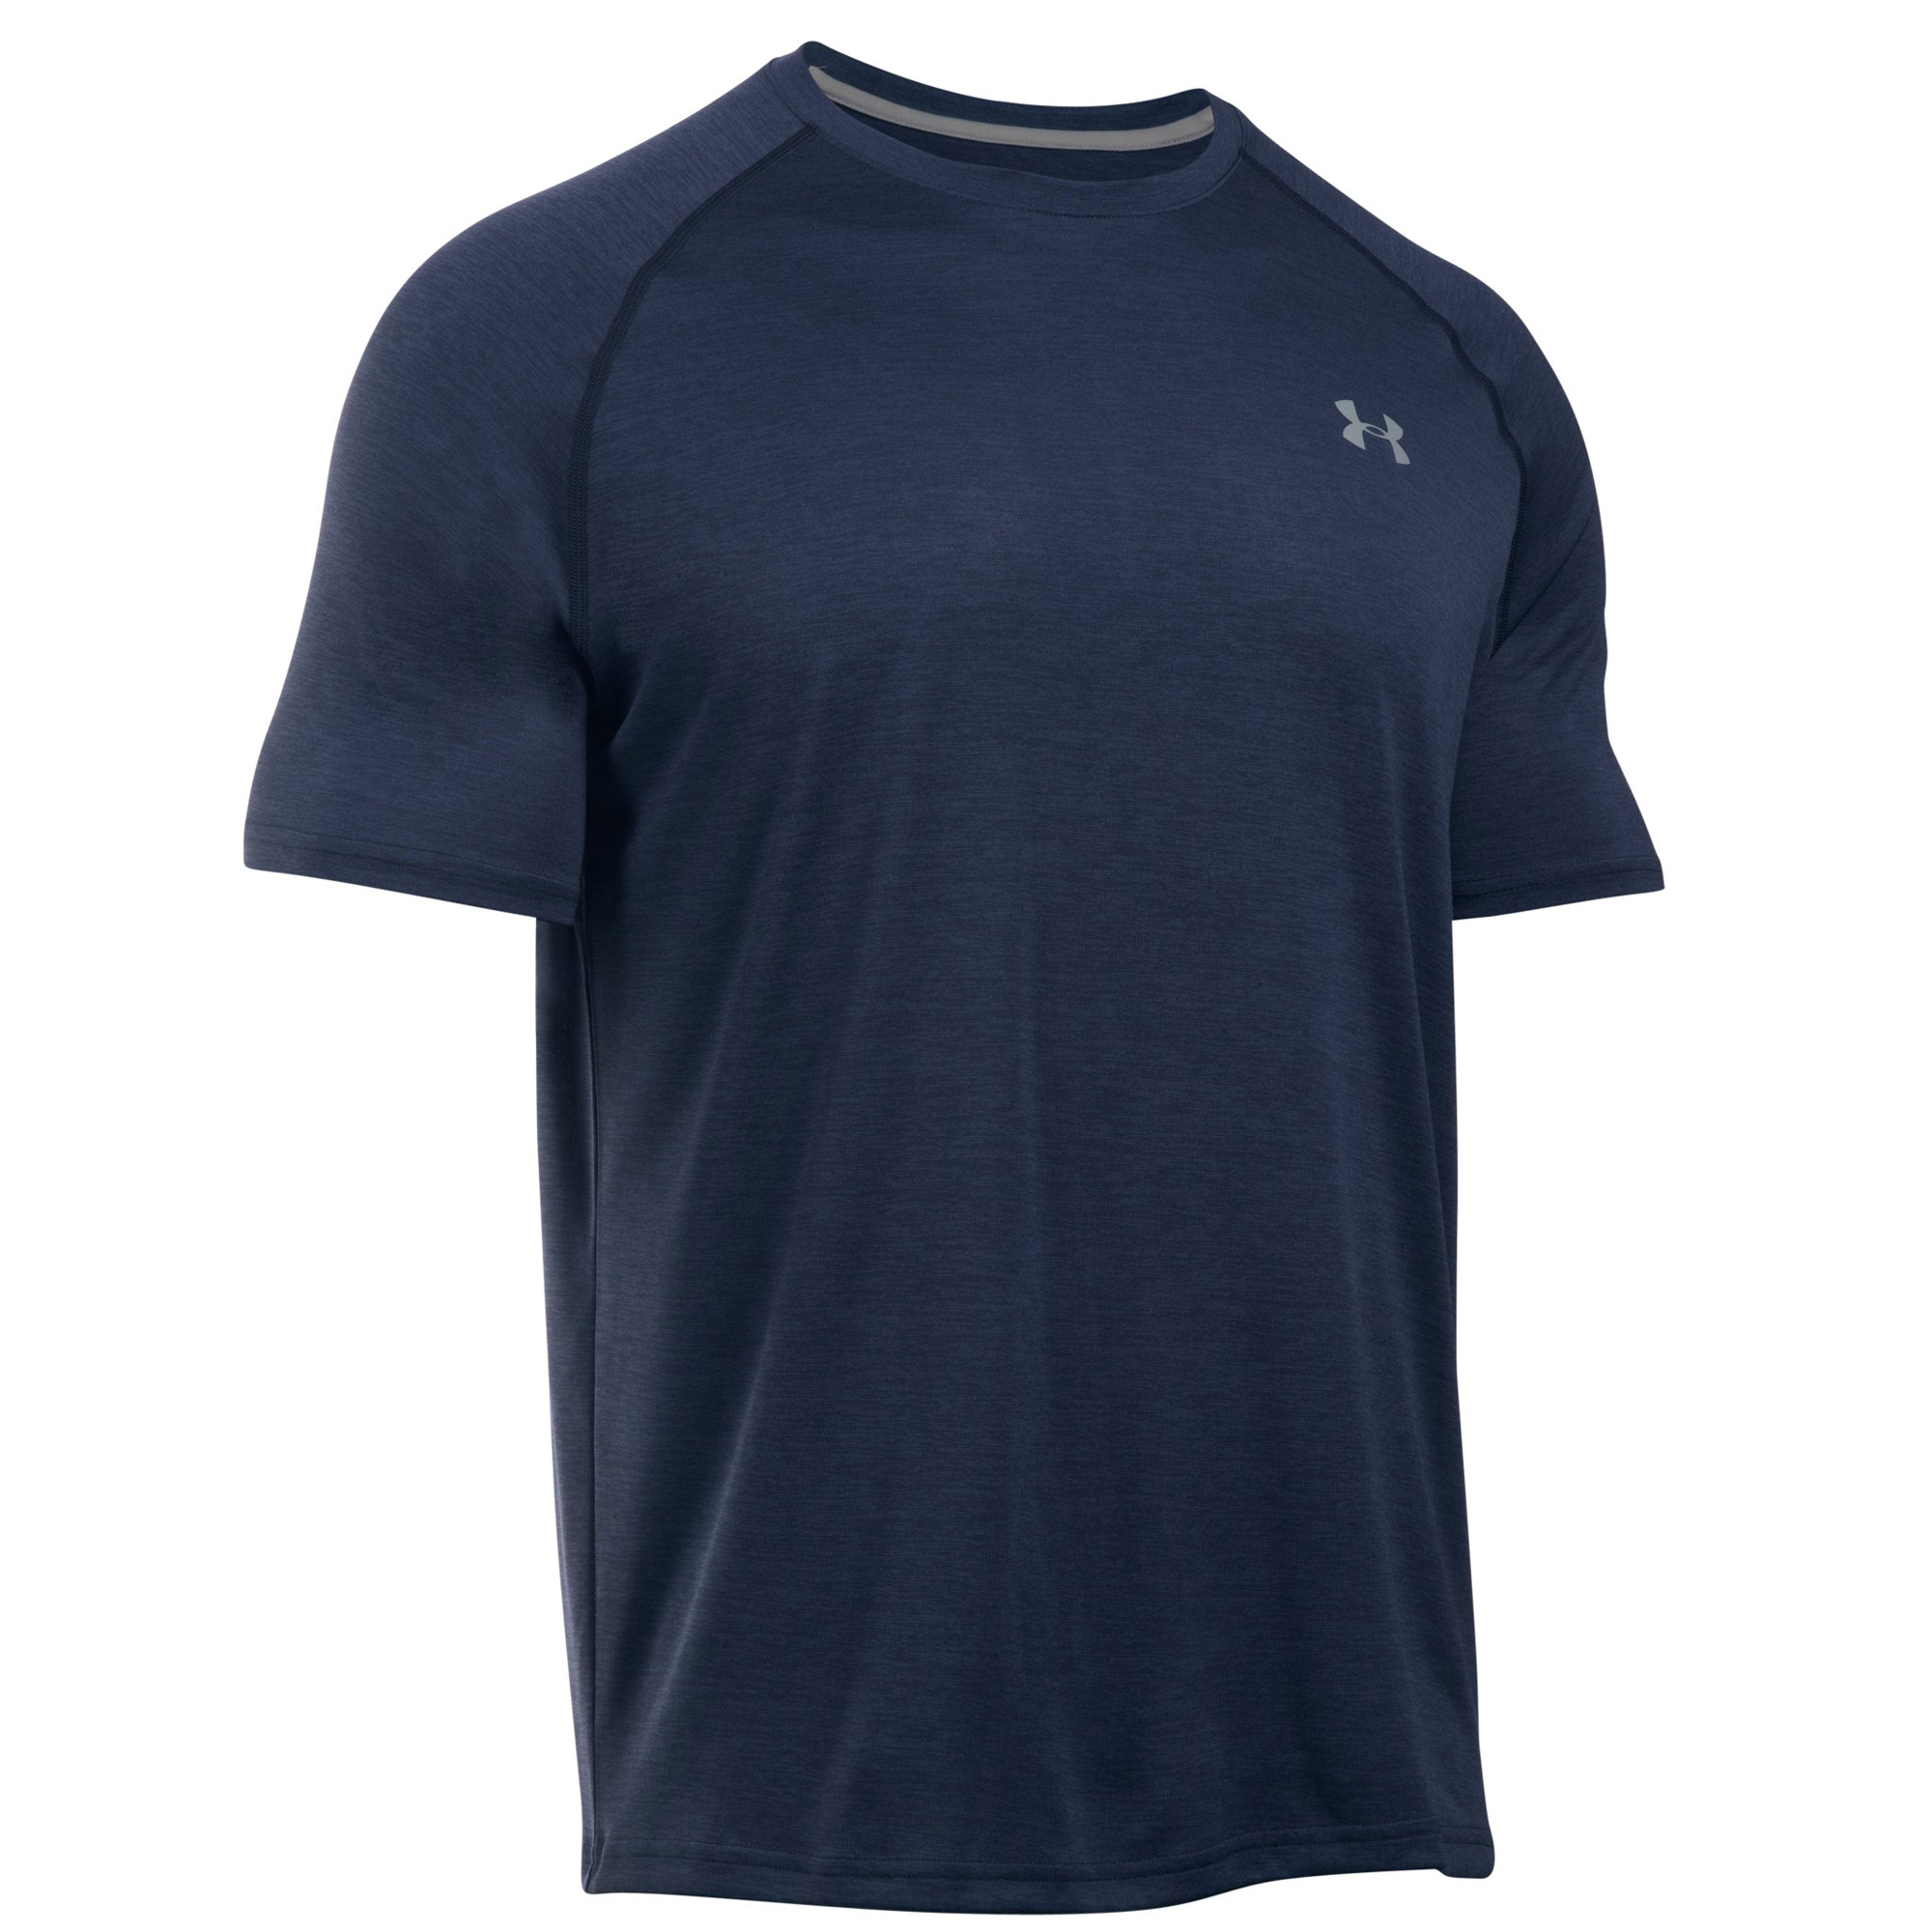 Under armour mens tech short sleeve t shirt tee ebay for Mens under armour shirts